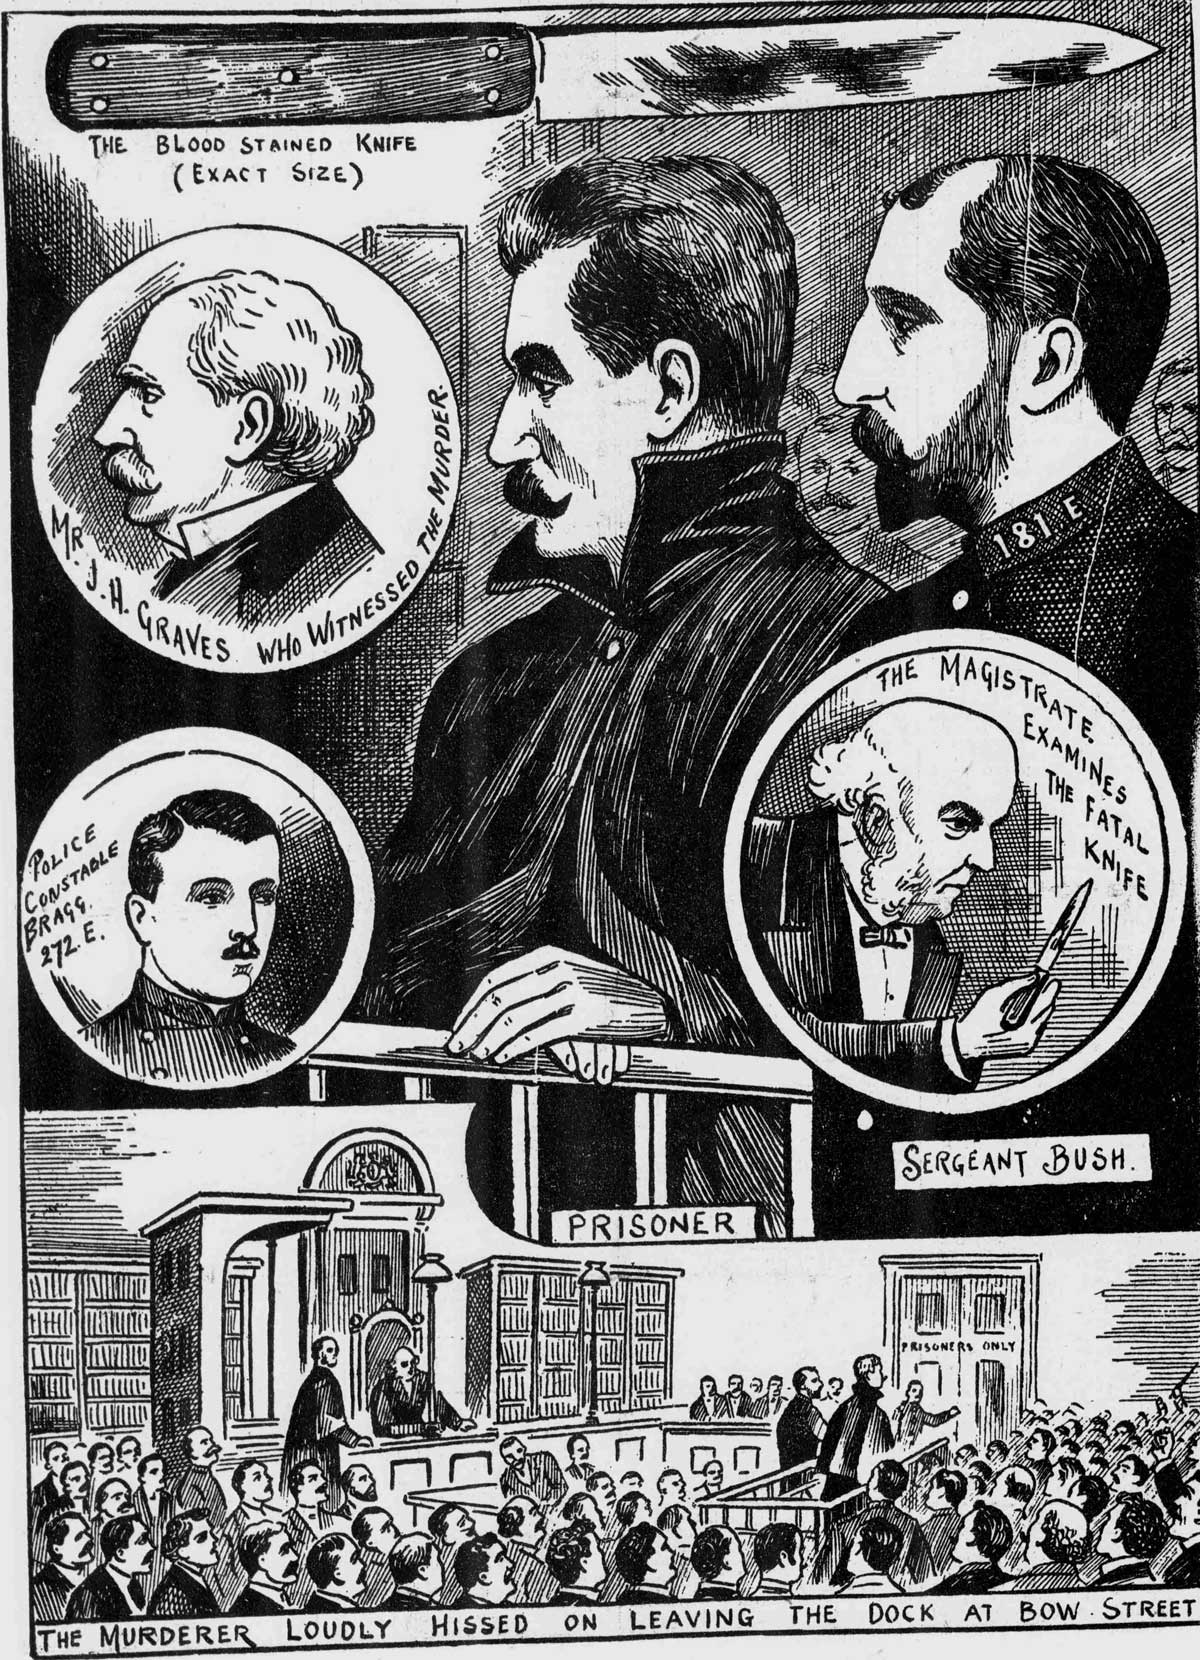 Illustrations showing the accused in court.